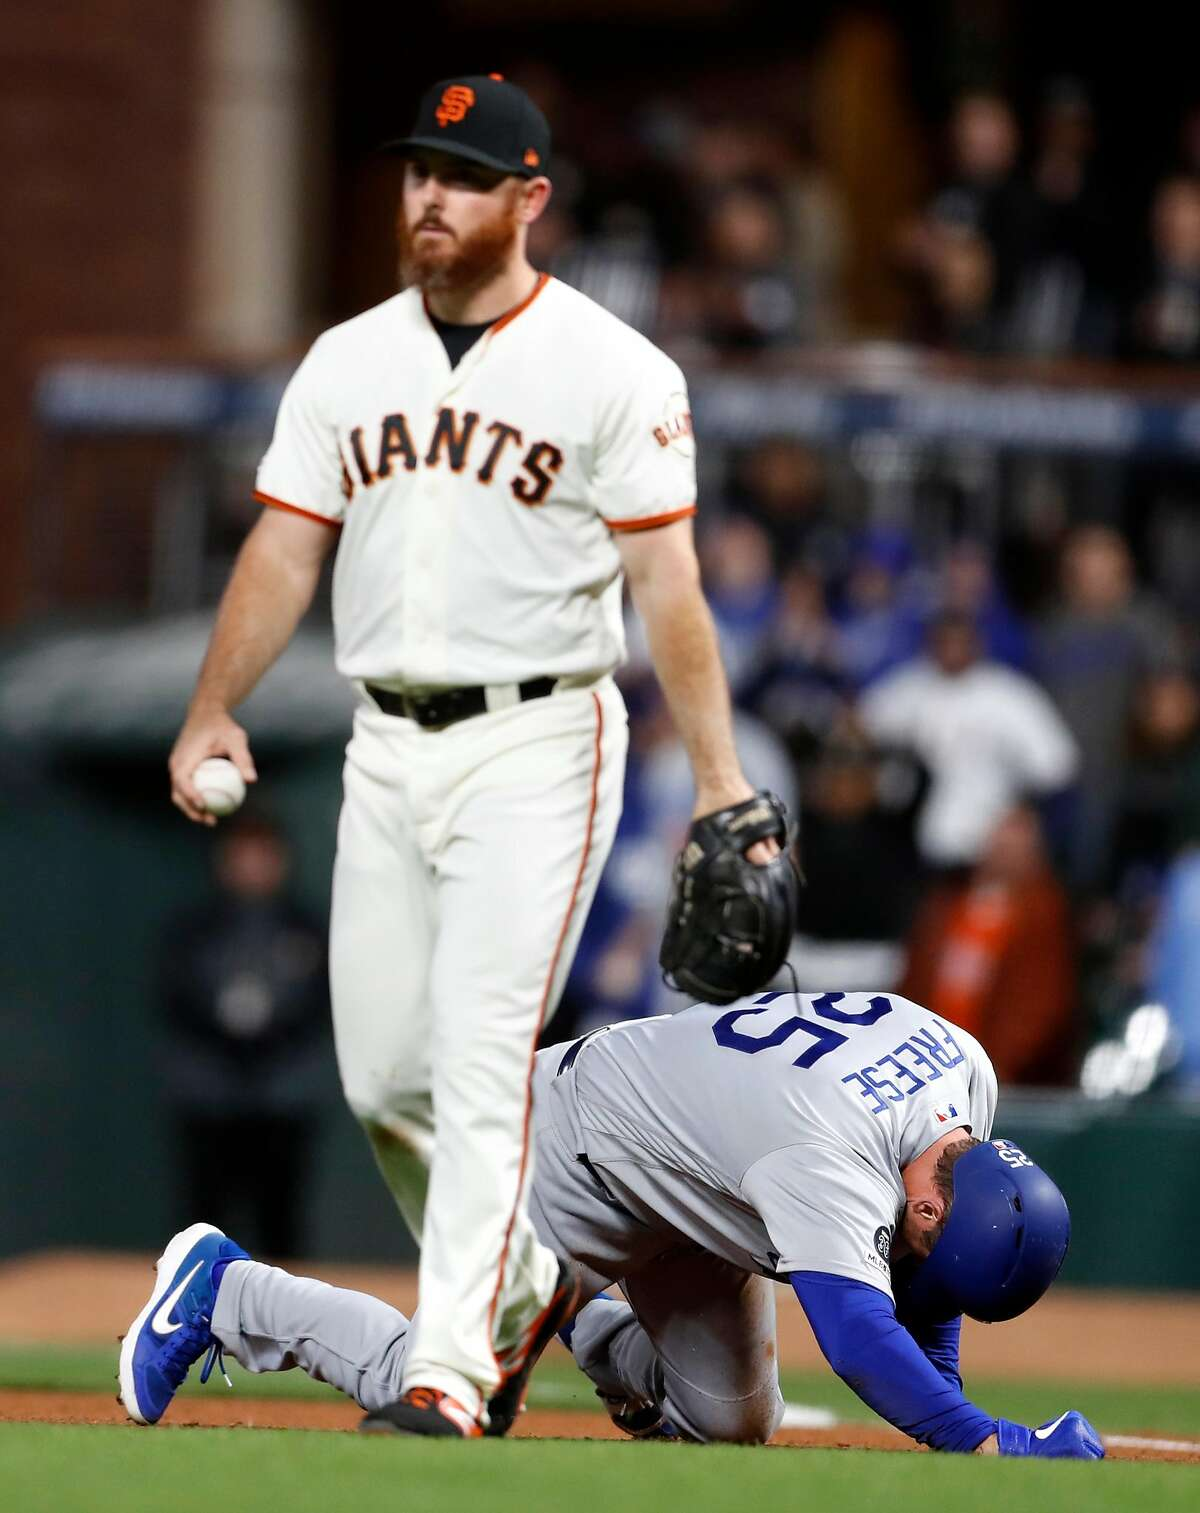 Los Angeles Dodgers' David Freese reacts after overrunning first base and being tagged out by San Francisco Giants' Sam Dyson in 7th inning during MLB game at Oracle Park in San Francisco, Calif., on Monday, April 29, 2019.